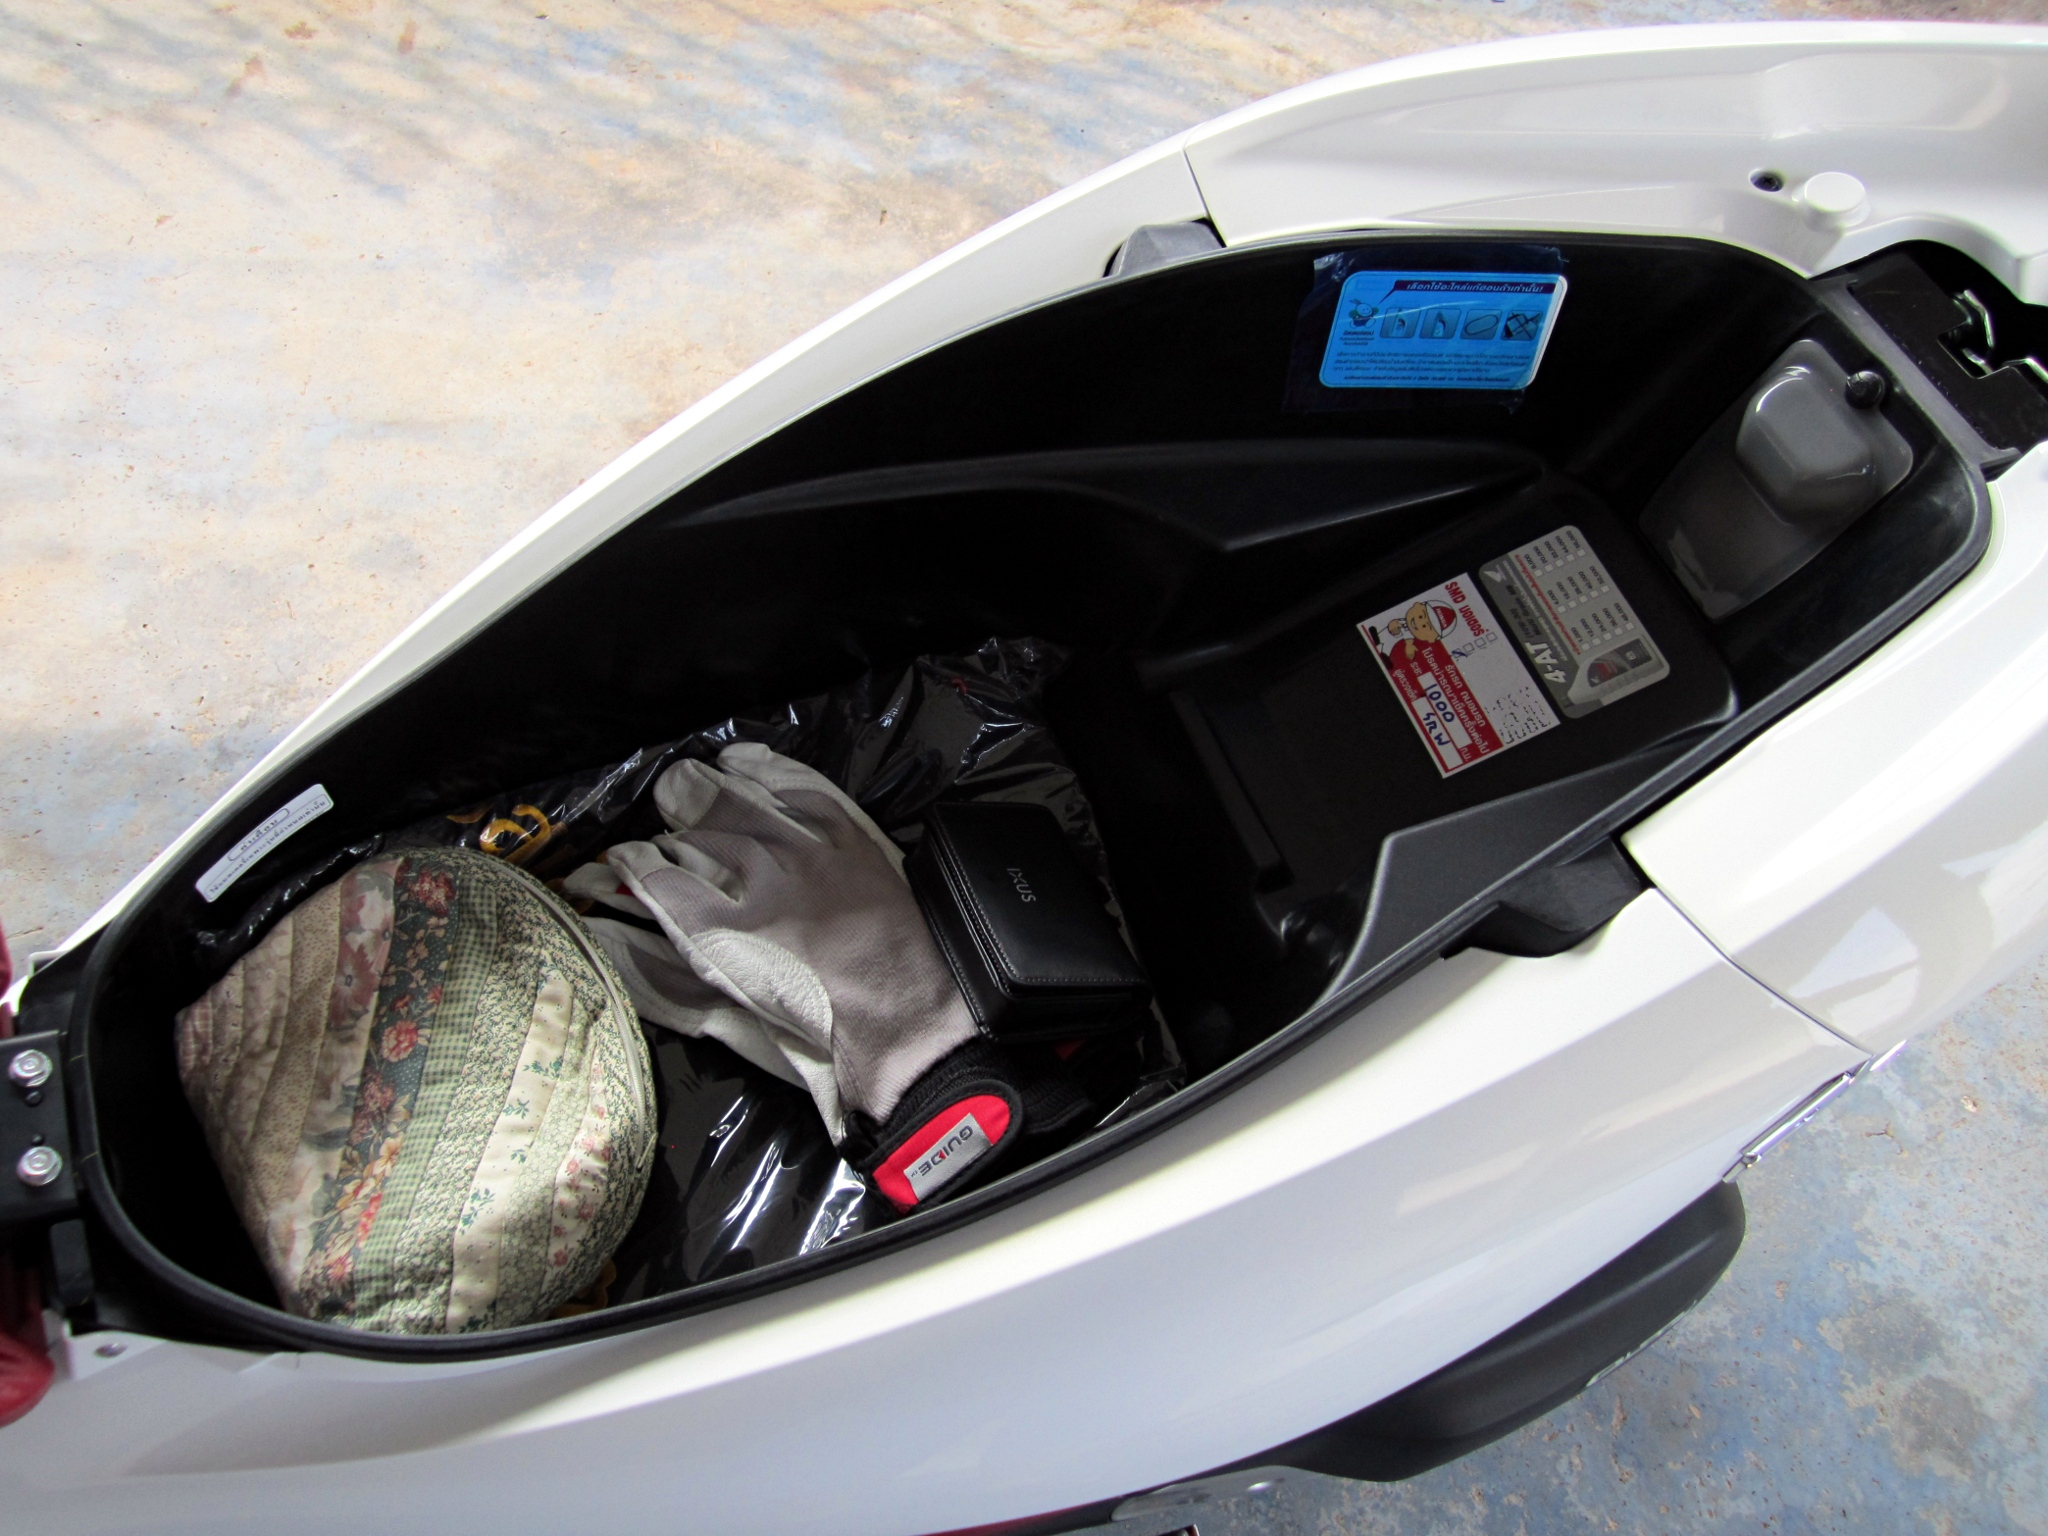 Description Honda PCX150 2013 Storage.JPG